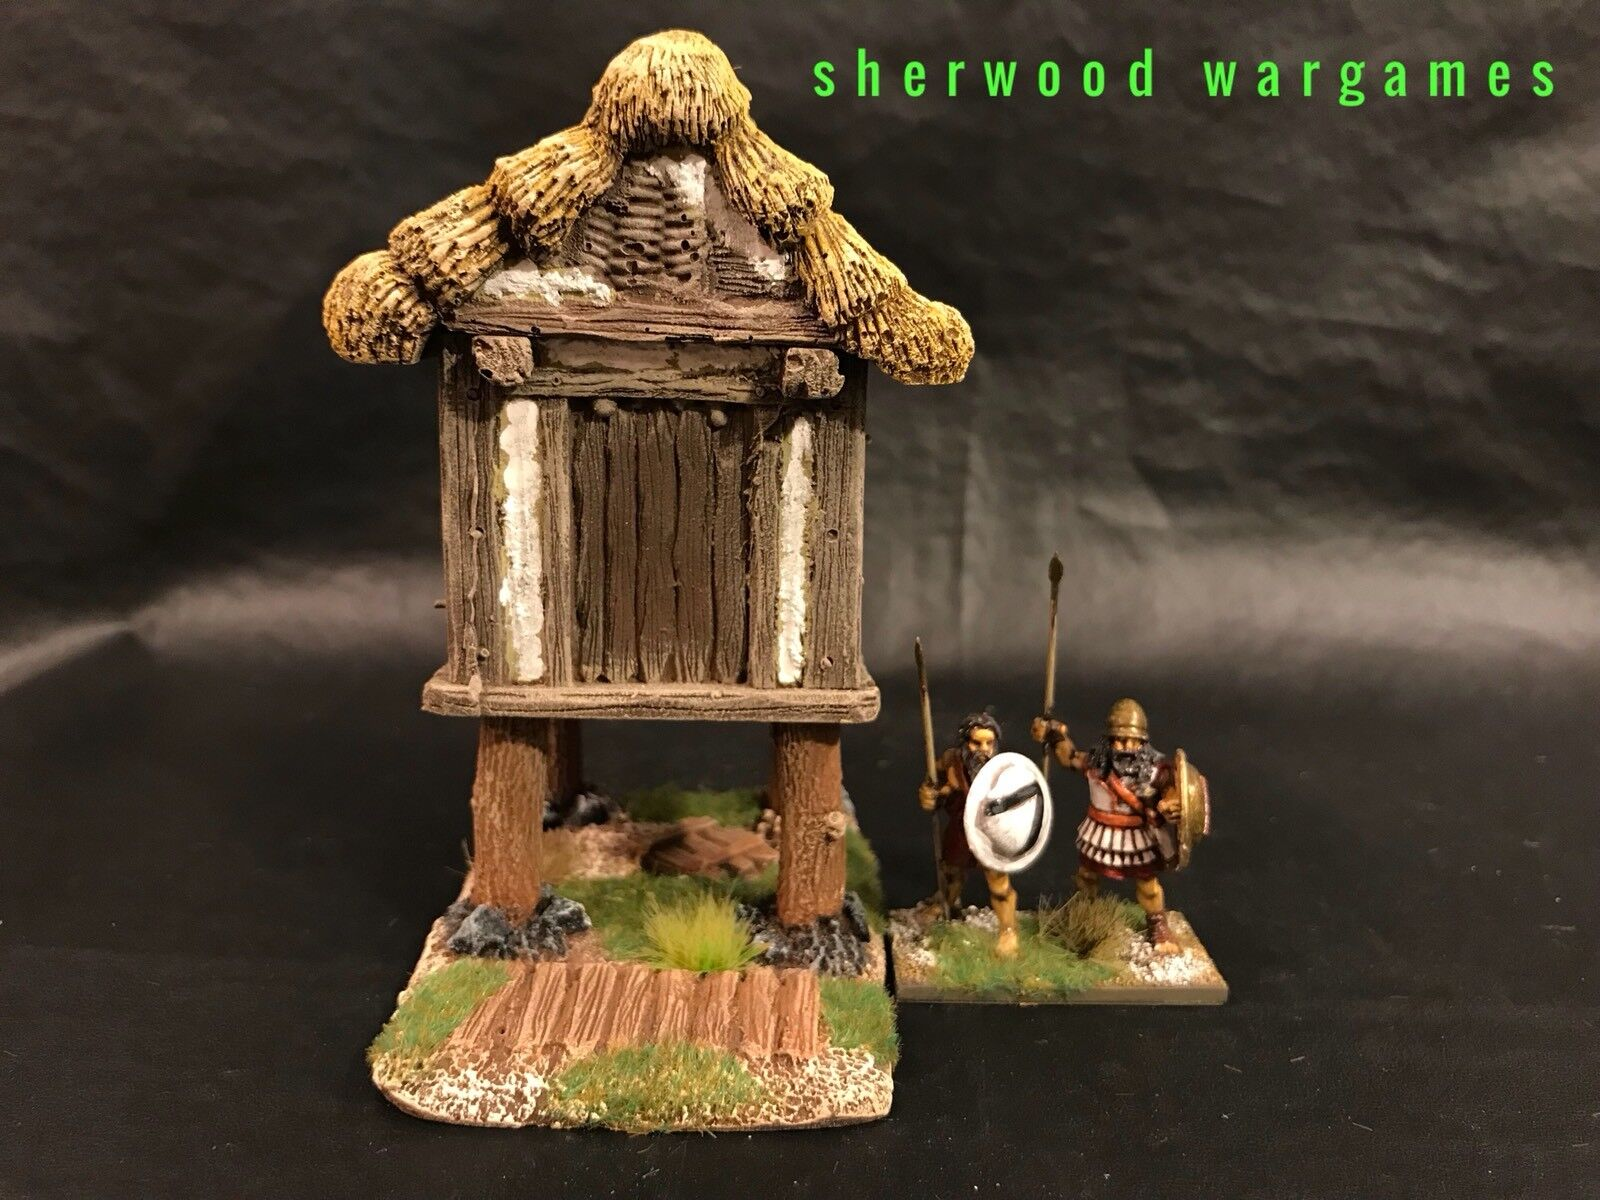 28mm Thatched Raised Storehouse, By Grand Manner, Propainted, Dark Ages, BNIB